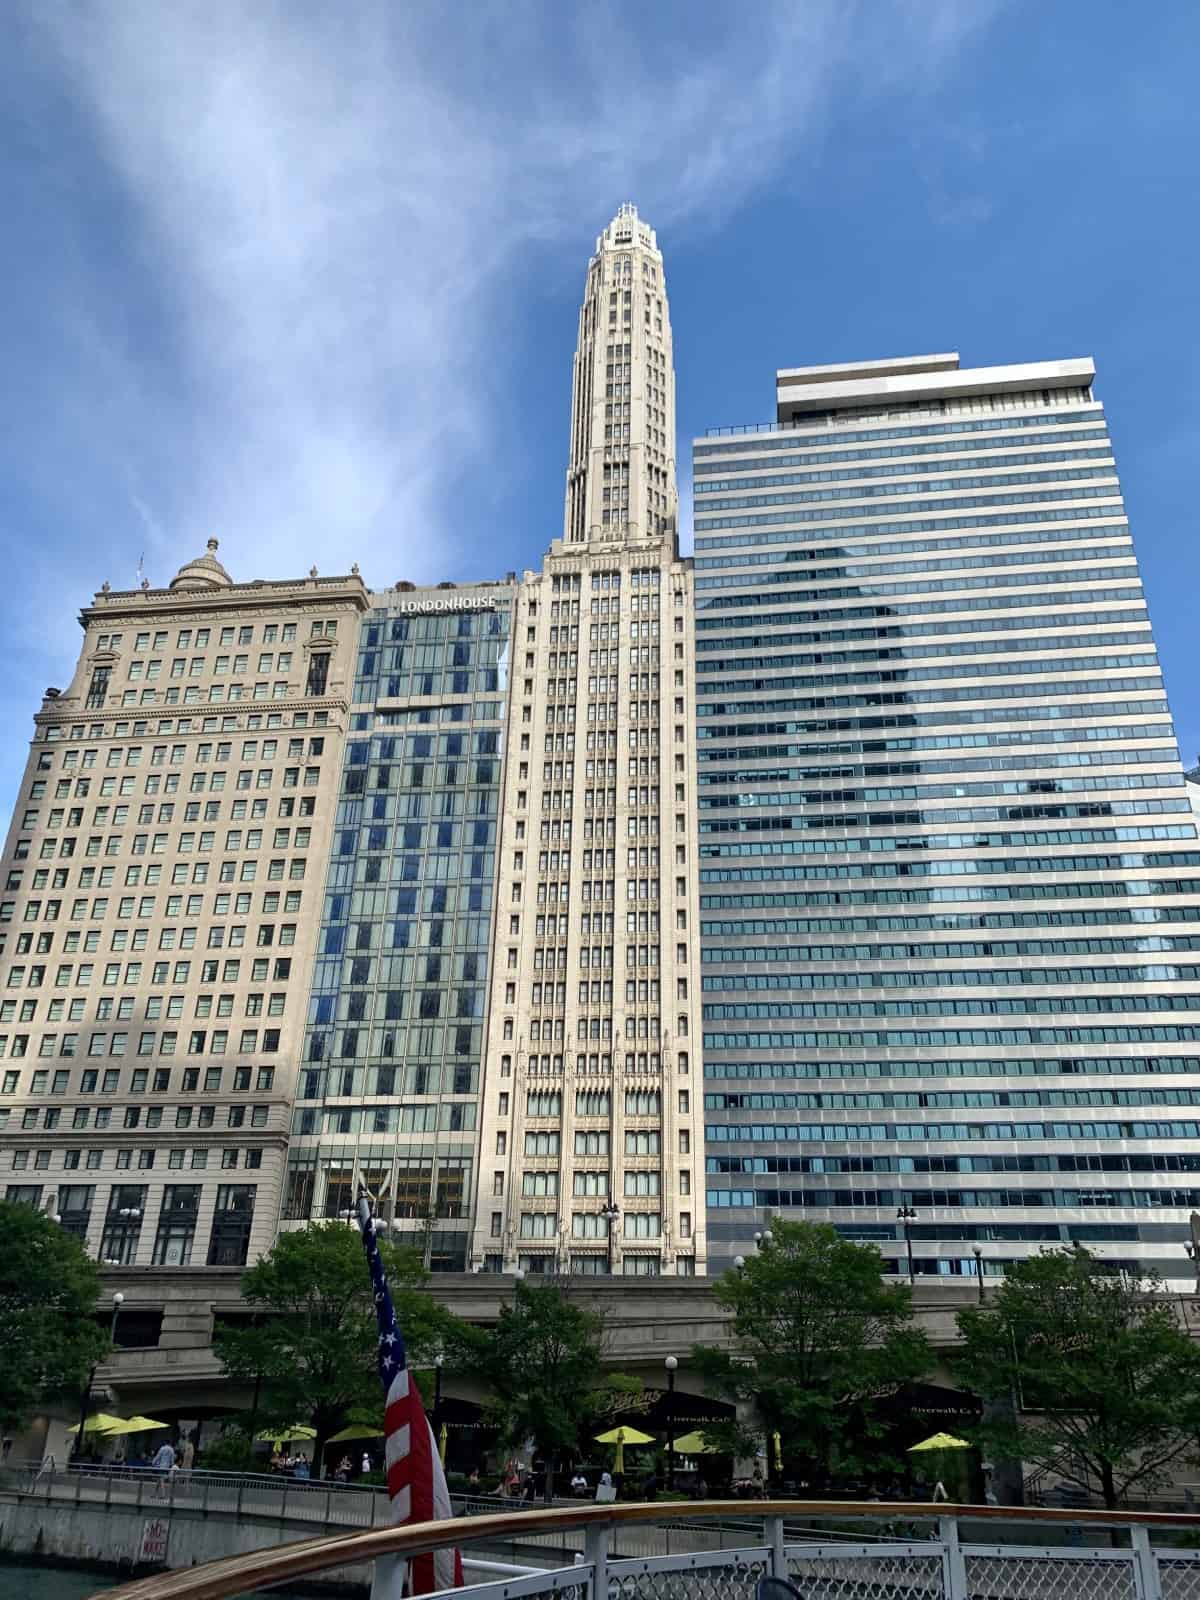 Multiple architectural styles side by side - Chicago Architecture Foundation River Cruise